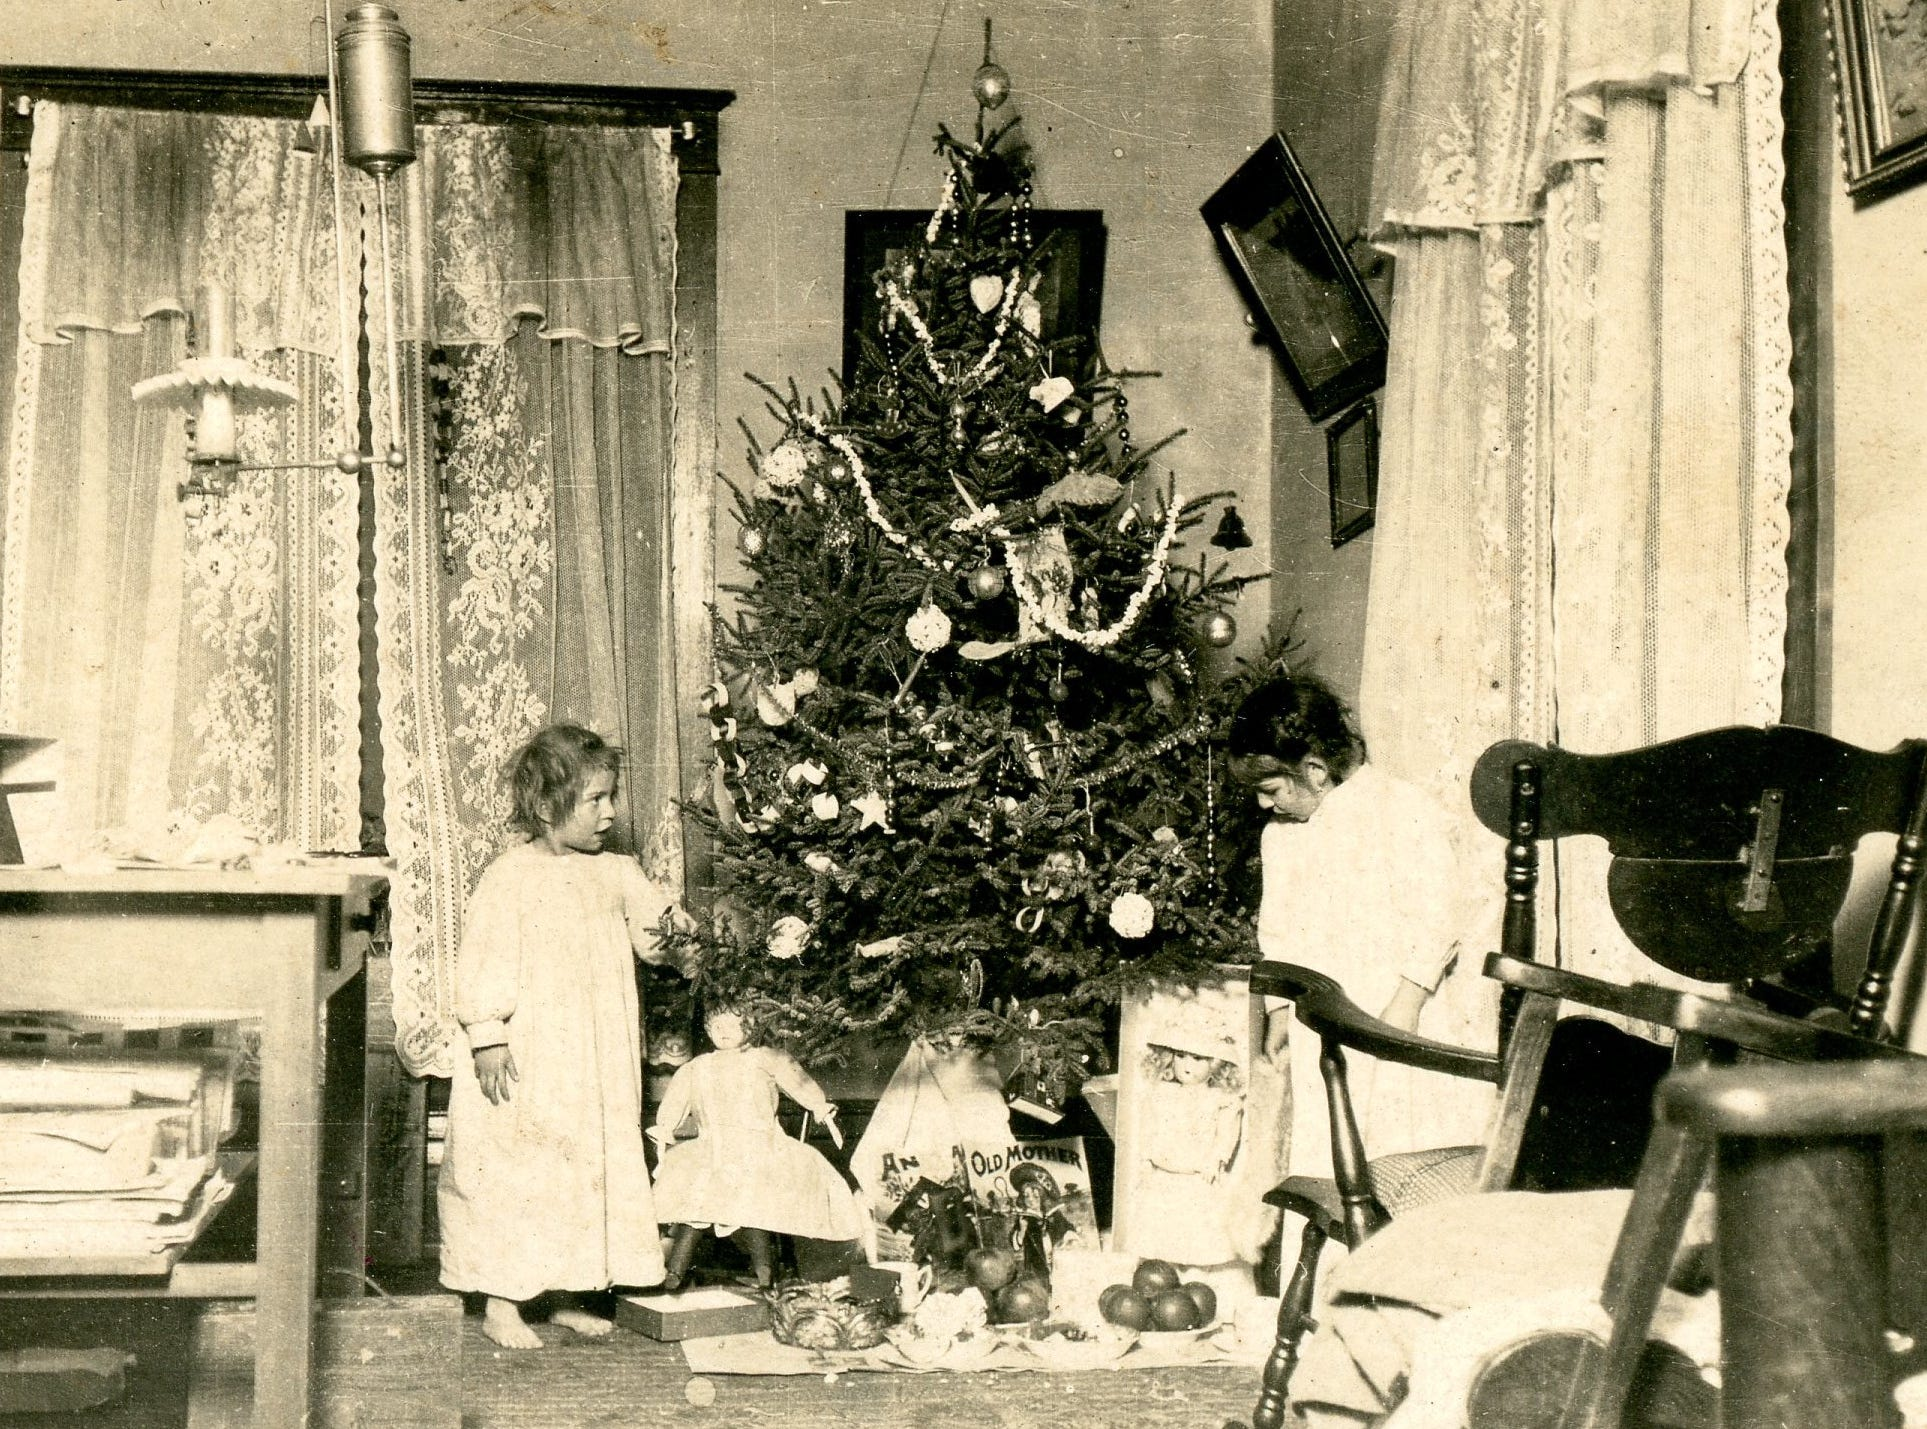 Two girls inspect what's under the Christmas tree, date unknown.